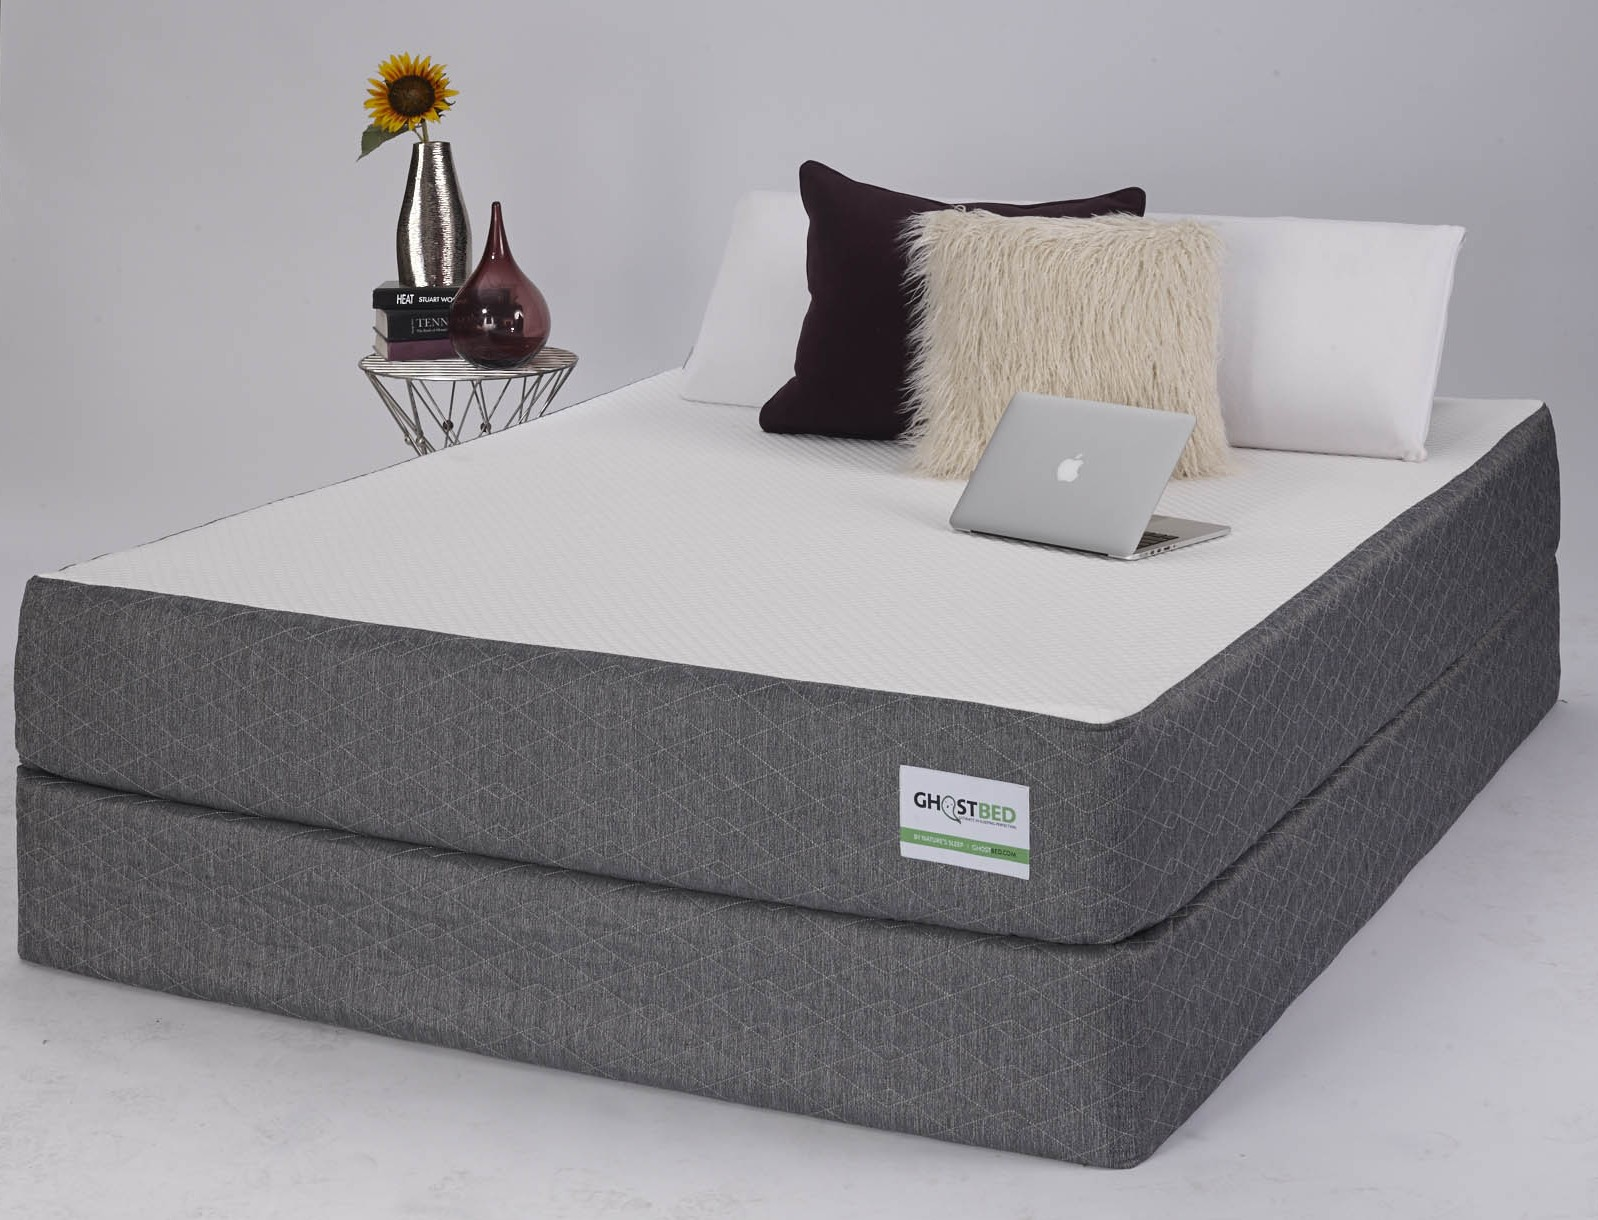 Ghostbed Mattress By Nature S Sleep Review